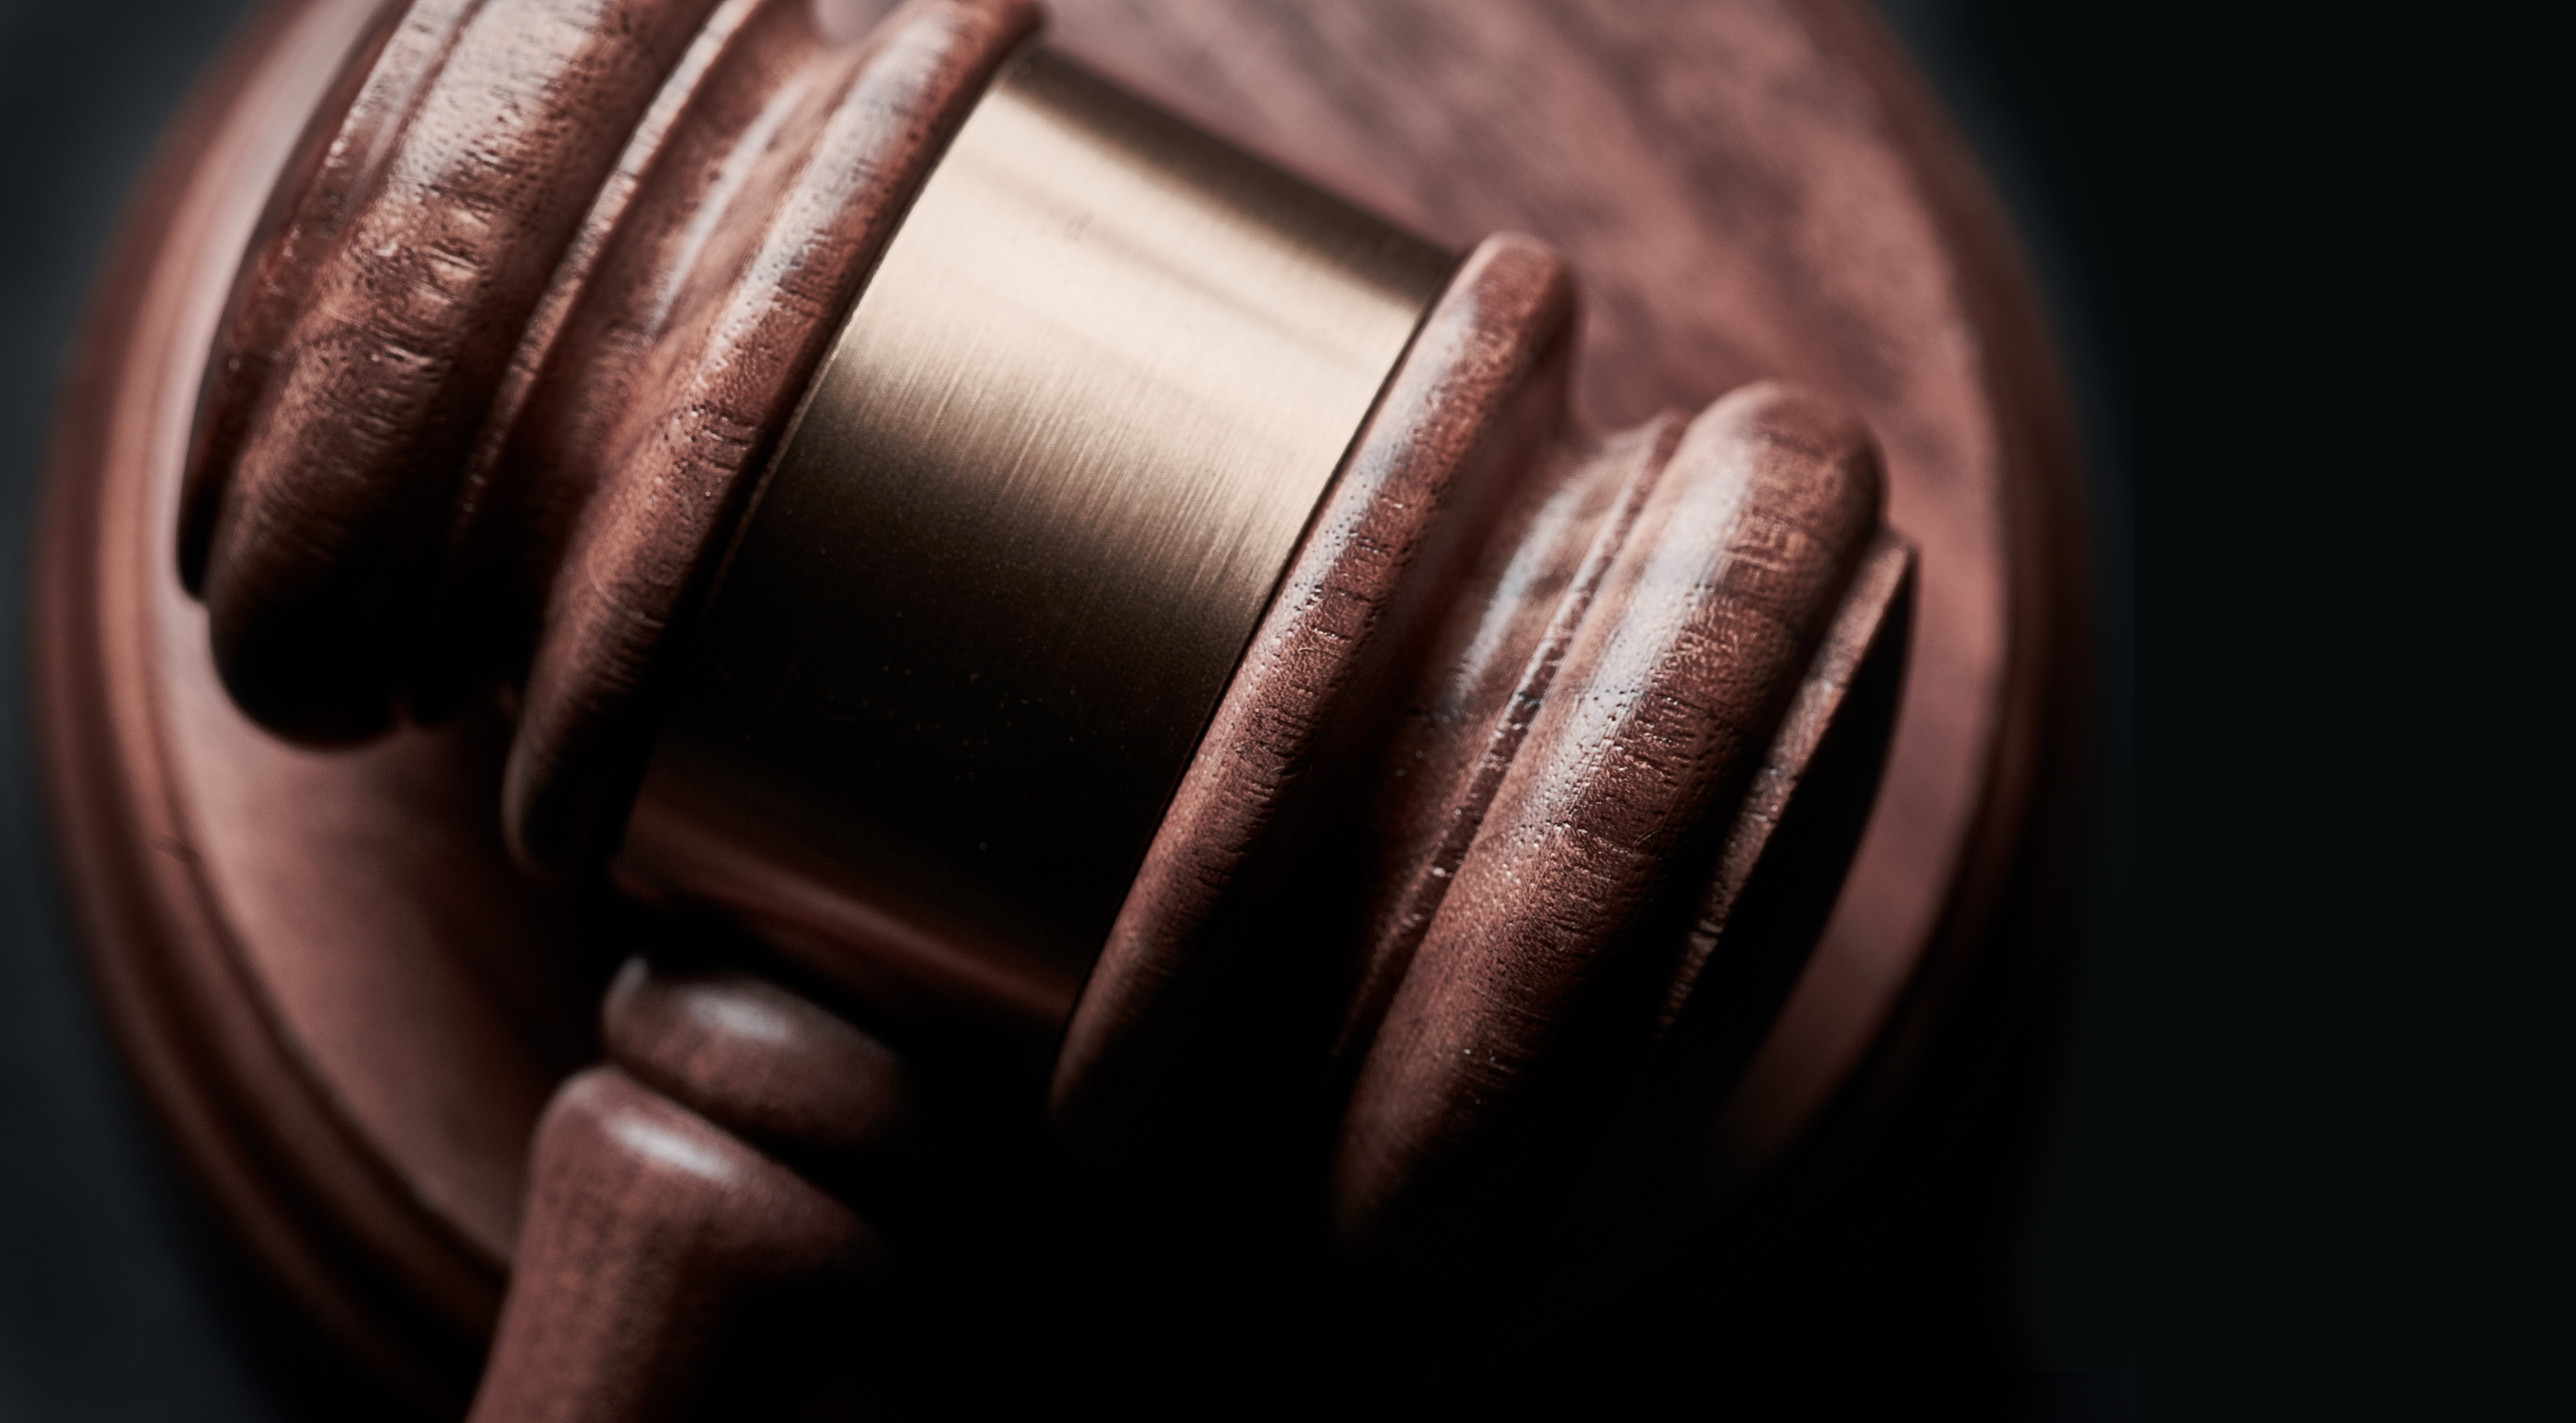 Maryland High Court Recognizes an Independent Cause of Action for Breach of Fiduciary Duty